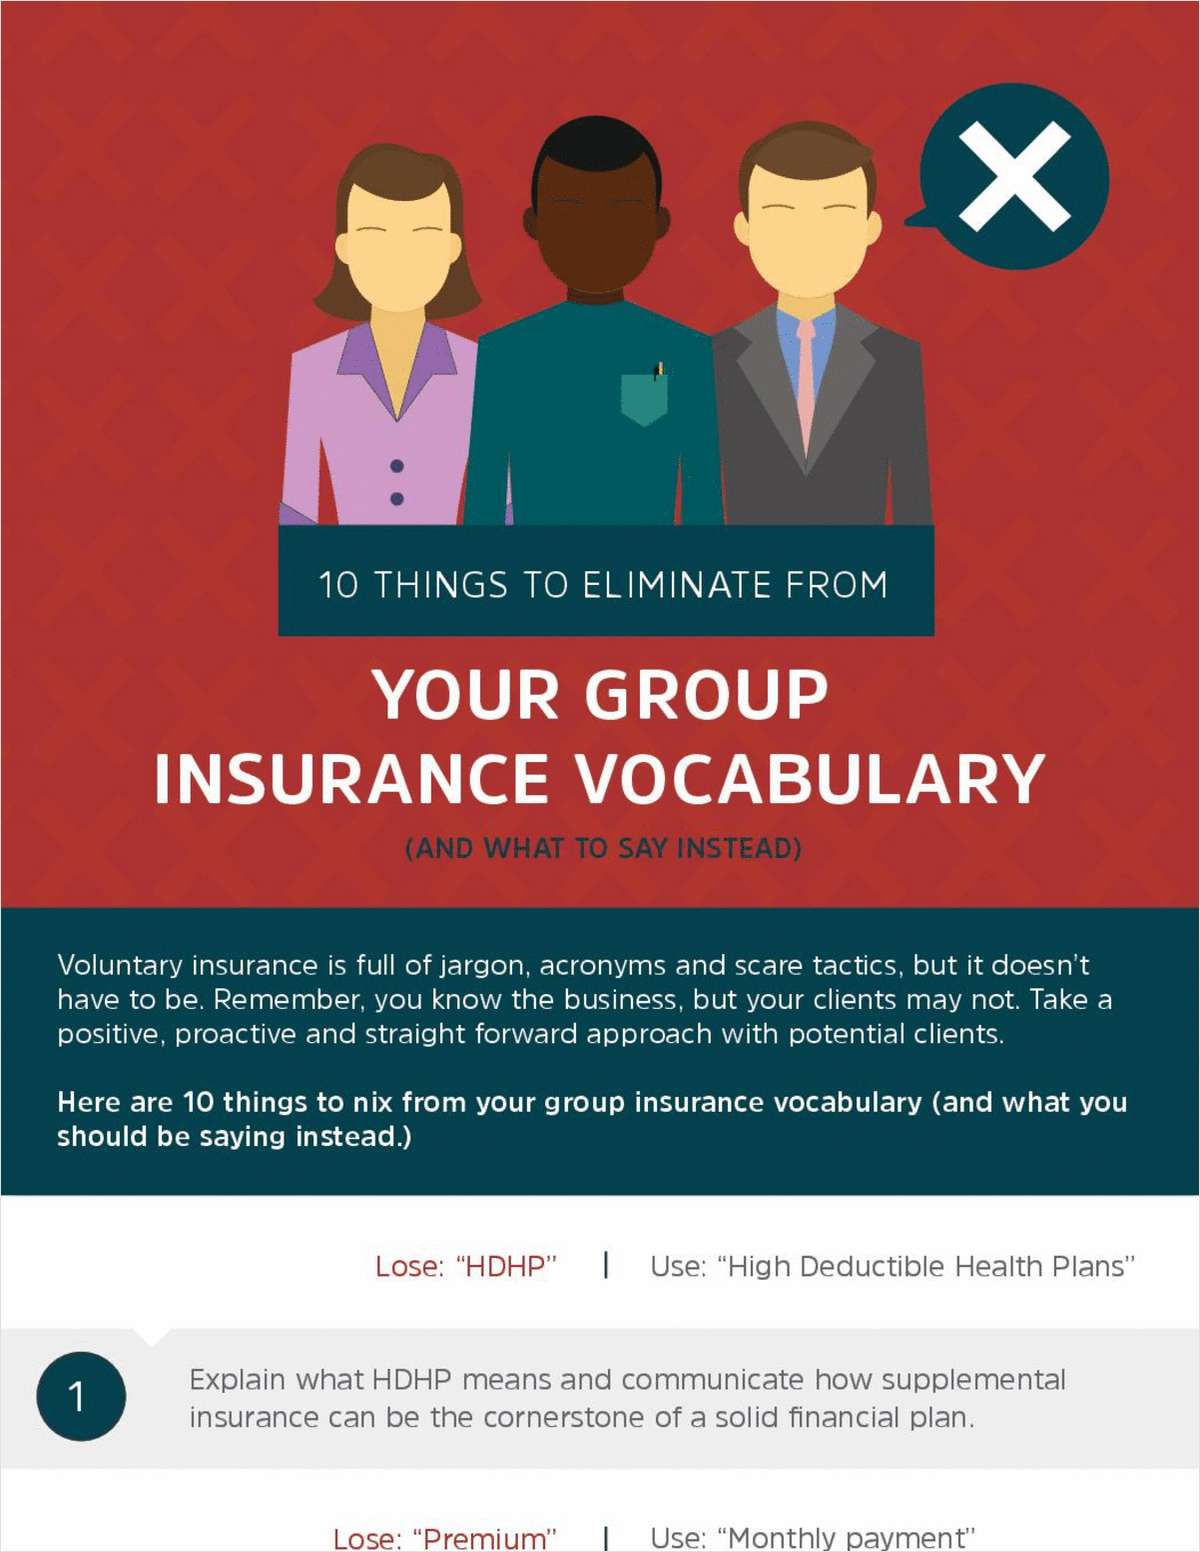 10 Things to Eliminate from Your Group Insurance Vocabulary (and What to Say Instead)